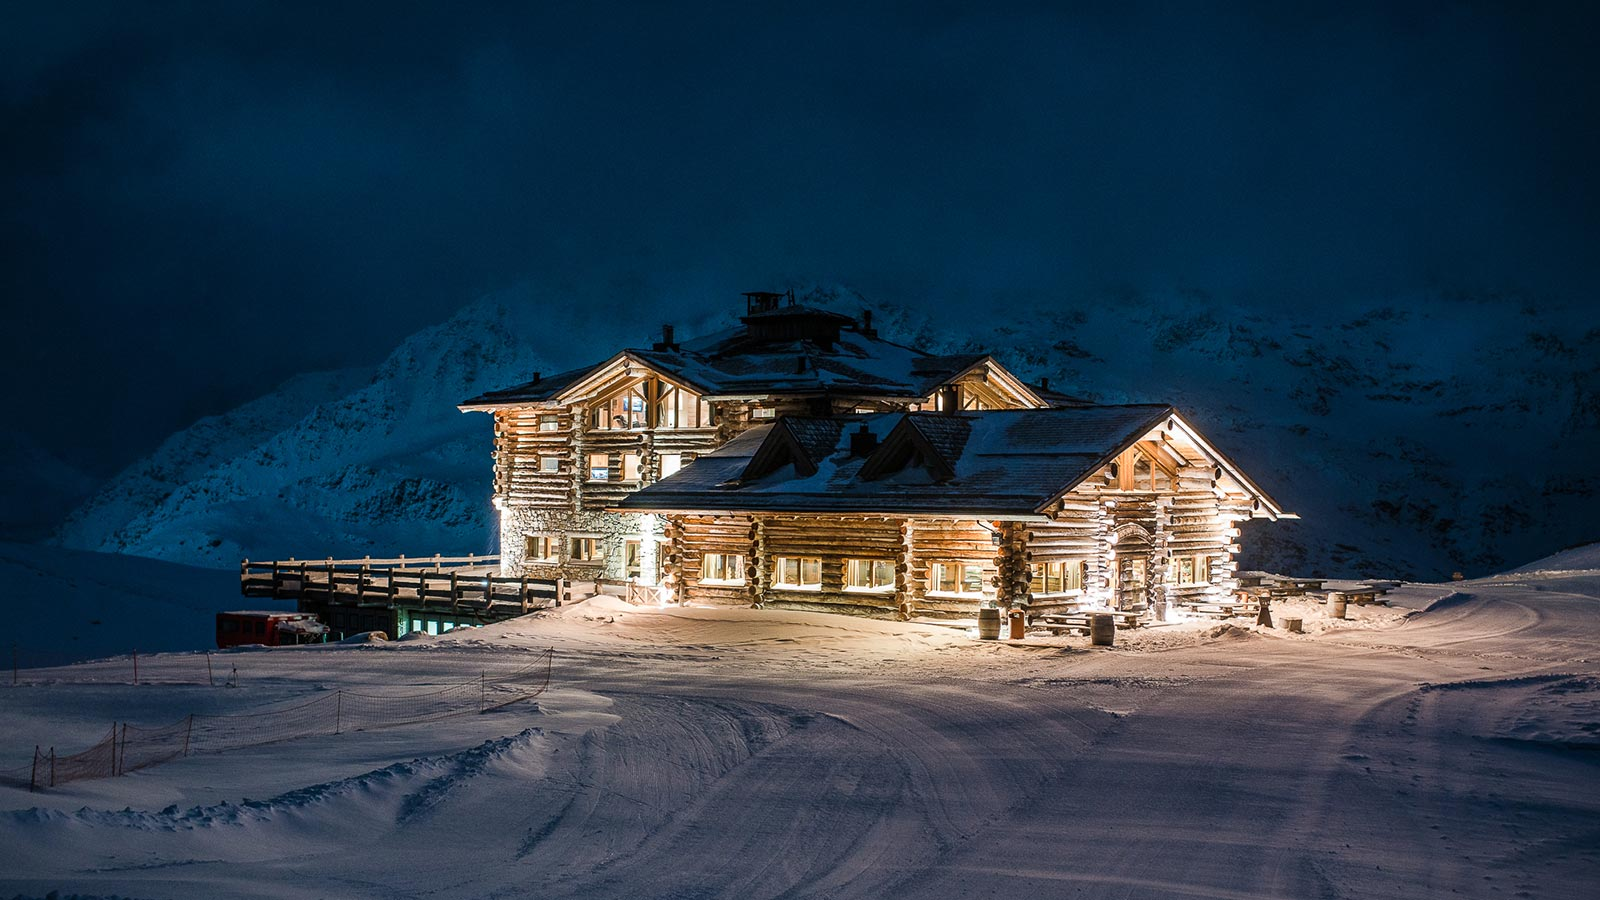 The mountain lodge at night shines with lights